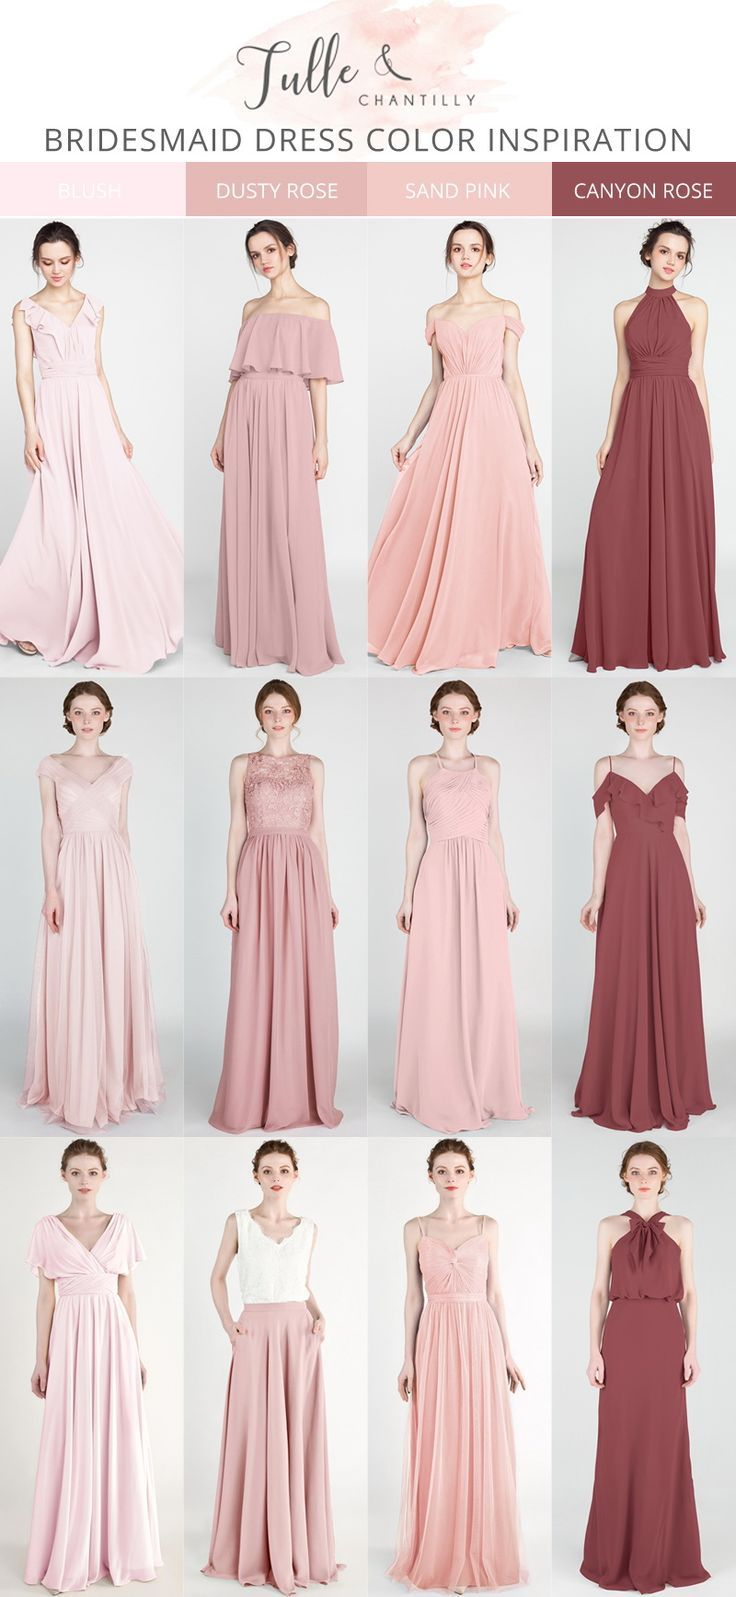 Long Short Bridesmaid Dresses 80 149 Size 2 30 And 50 Colors In 2020 Altrosa Brautjungfernkleider Kleid Altrosa Brautjungfernkleider Rosa